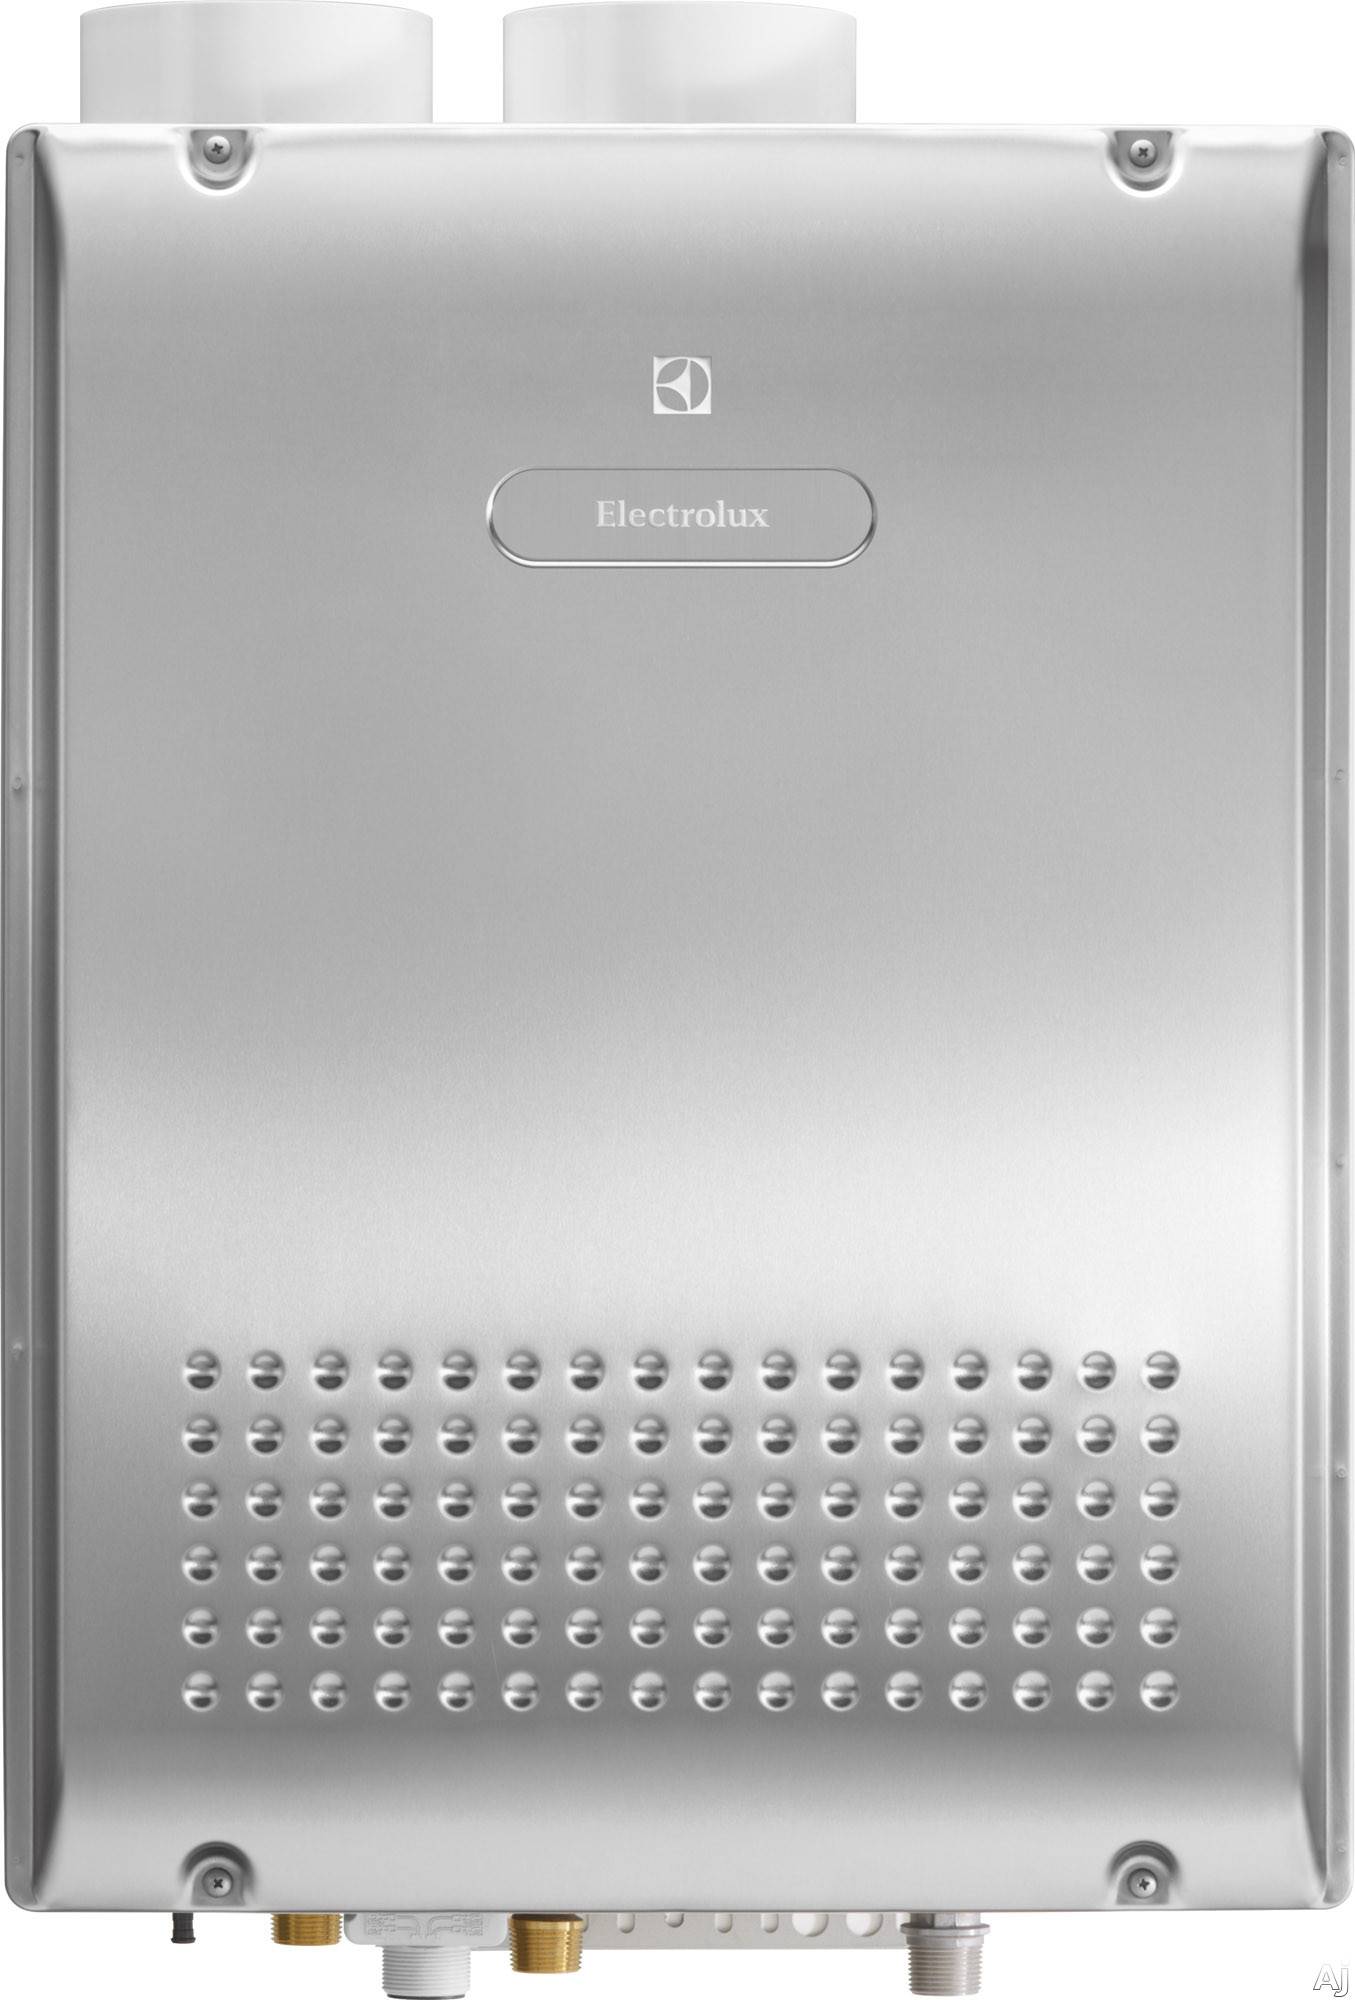 Electrolux EN18WI30LS 19 Inch Tankless Natural Gas Water Heater with 180,000 BTU/H, 0.91 Energy Factor, 93% Thermal Efficicency, Wall Mount Application, Flow Meter Alarm and Energy Star Qualified